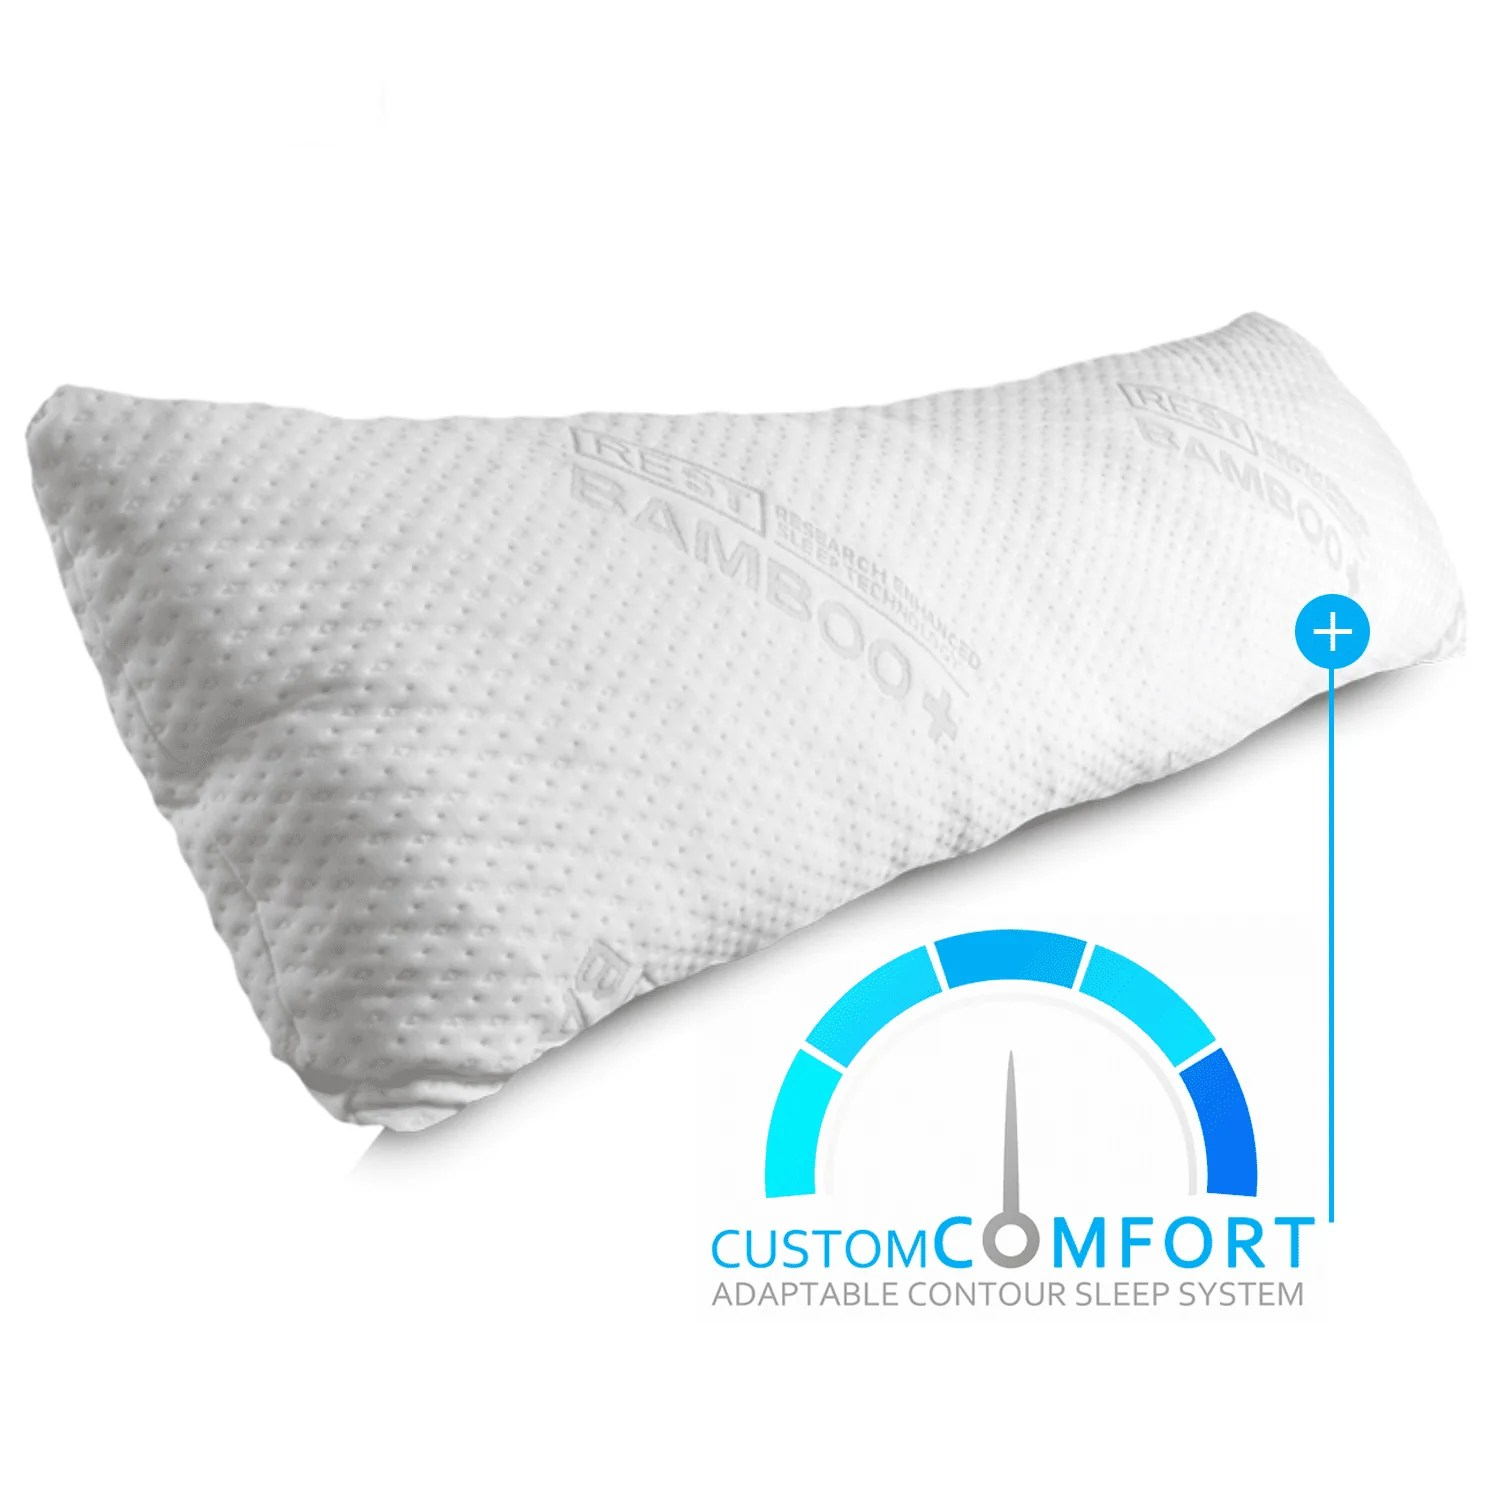 brads deal 40 off rest snuggle buddy memory foam body pillow discount applied in shopping cart